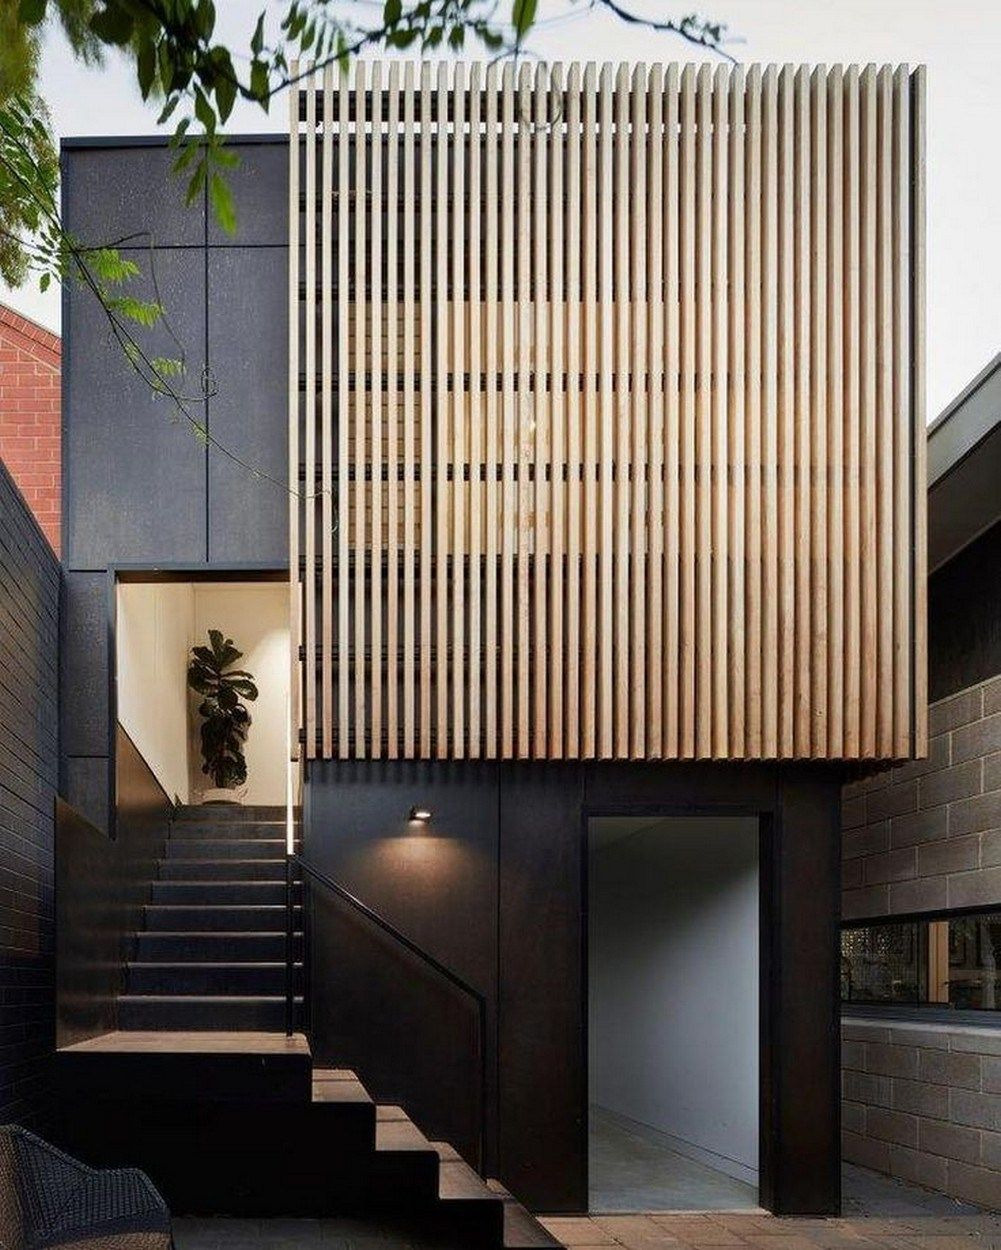 Most Beautiful Residential Houses New ✓48 Most Beautiful Modern House Architecture Design Ideas 1